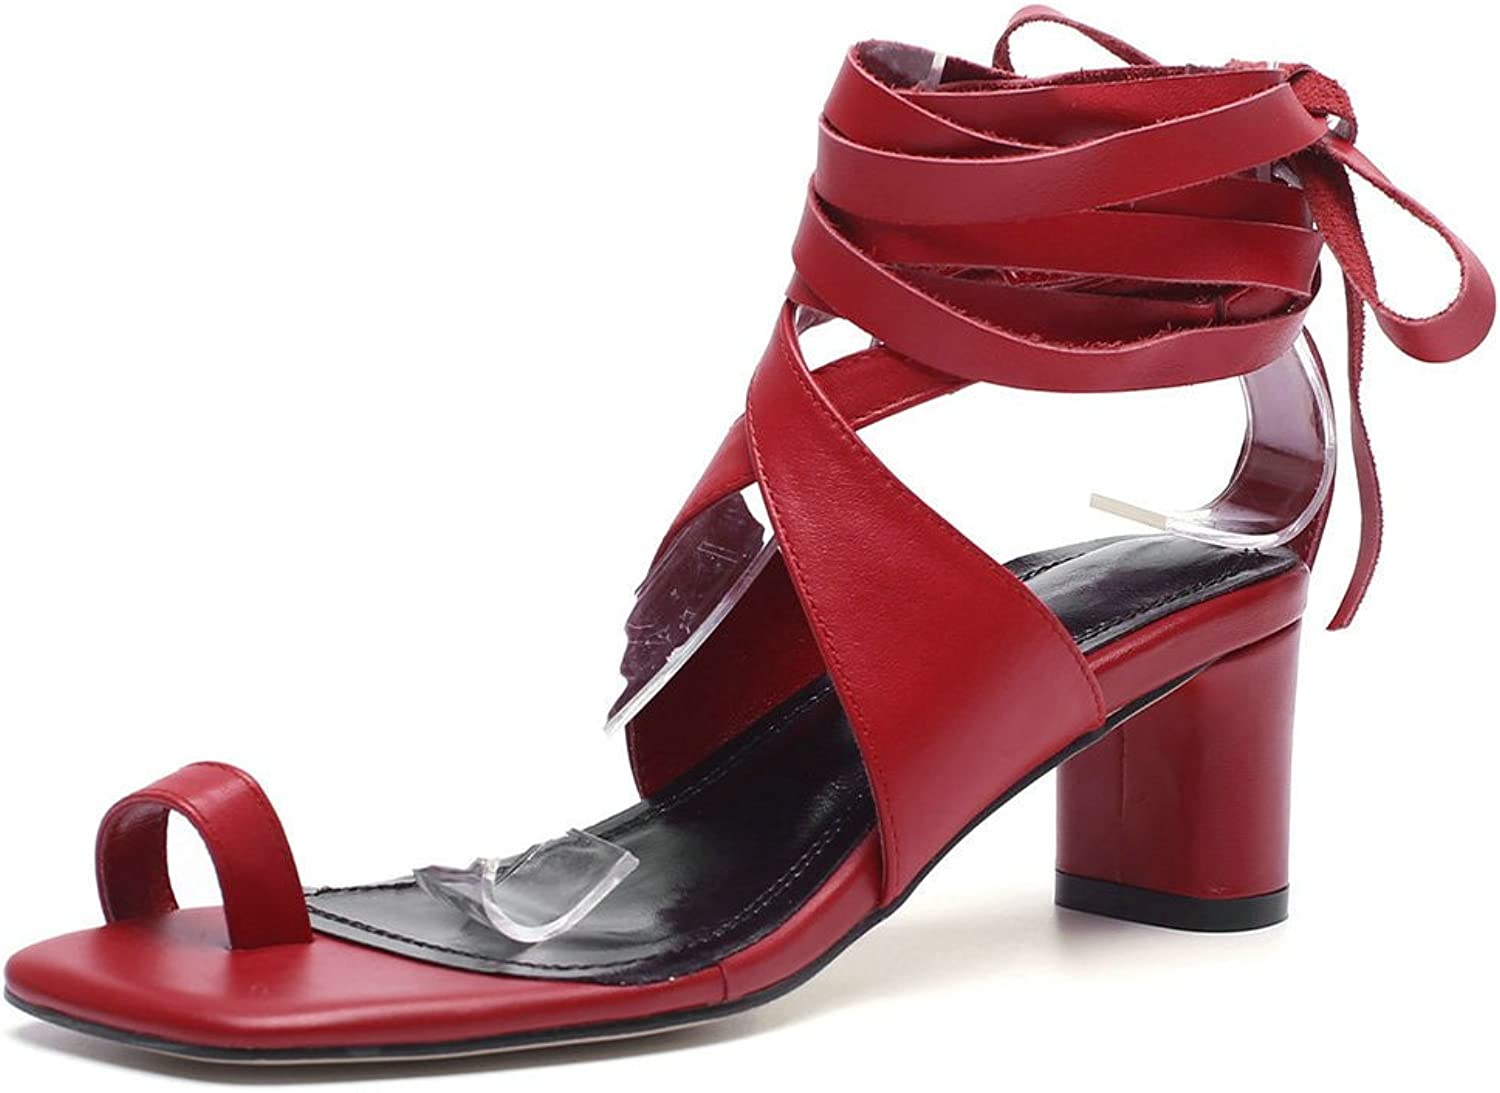 AnMengXinLing Women Knee High Gladiator Sandals Block Heel Strappy Lace up Ankle Strap Heeled Sandals Genuine Leather Flip Flop High Heel shoes